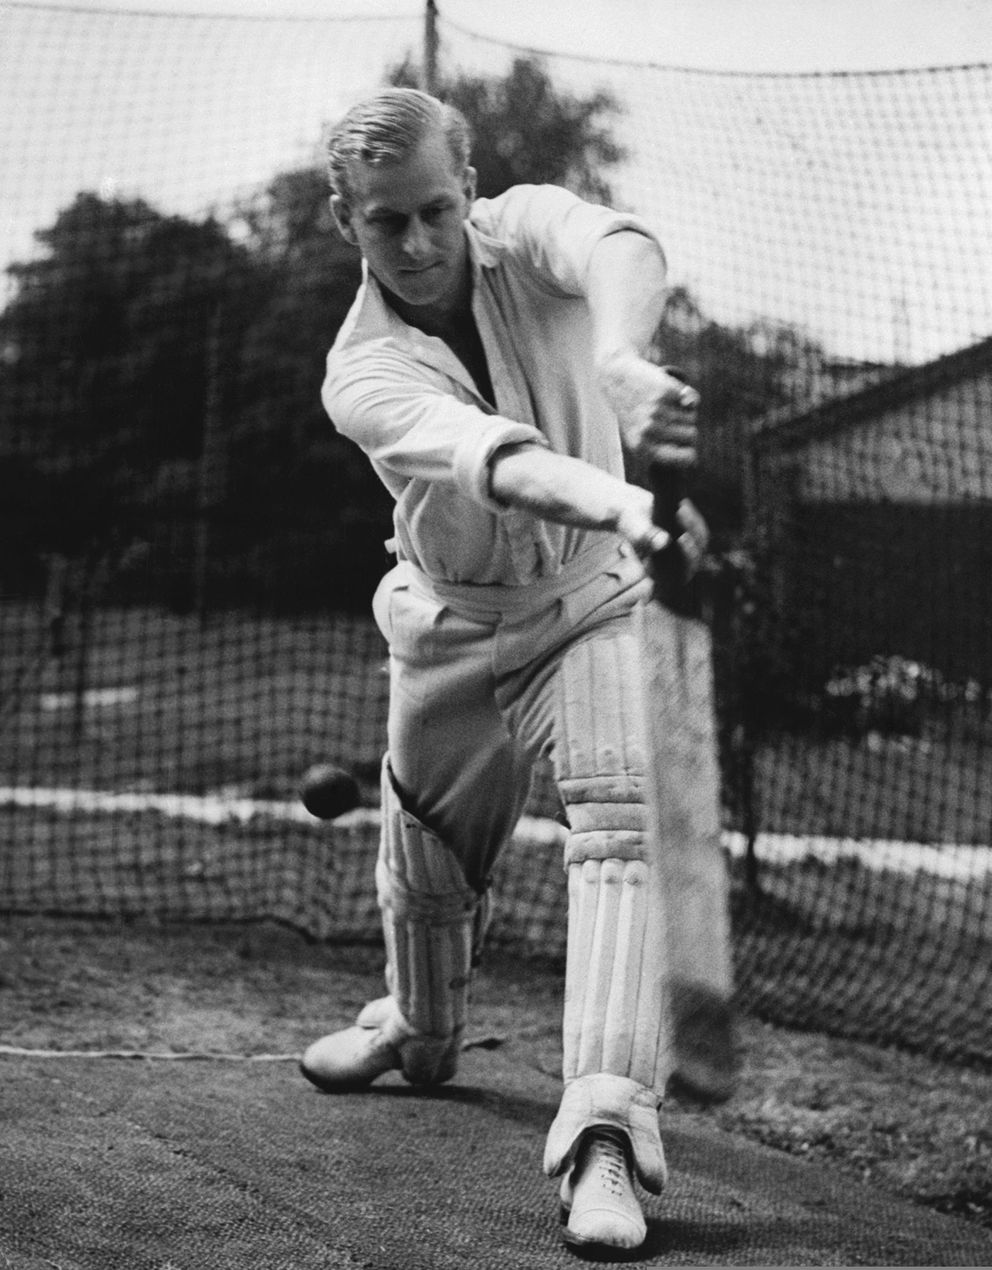 FILE - In this July 31, 1947 file photo, Lt. Philip Mountbatten, whose marriage to Princess Elizabeth has been set for November 20, bats at the nets during cricket practice at the Petty Officers' Training Center, Corsham, England. Buckingham Palace says Prince Philip, husband of Queen Elizabeth II, has died aged 99. (AP Photo/File)